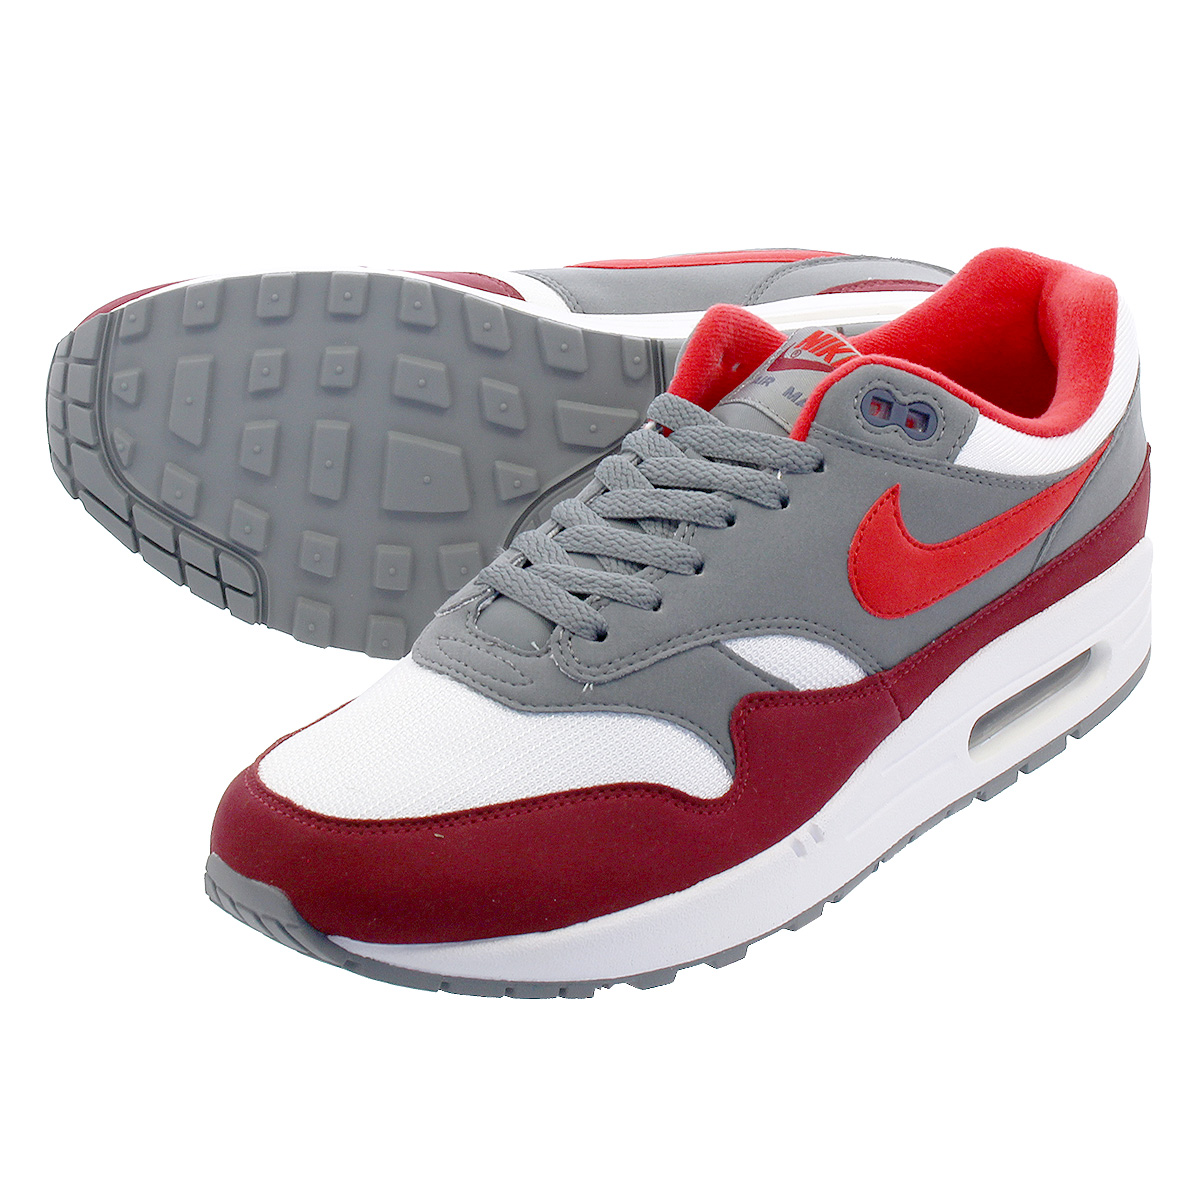 8a163dcb82 NIKE AIR MAX 1 Kie Ney AMAX 1 WHITE/UNIVERSITY RED/COOL GREY/TEAM RED  ah8145-100